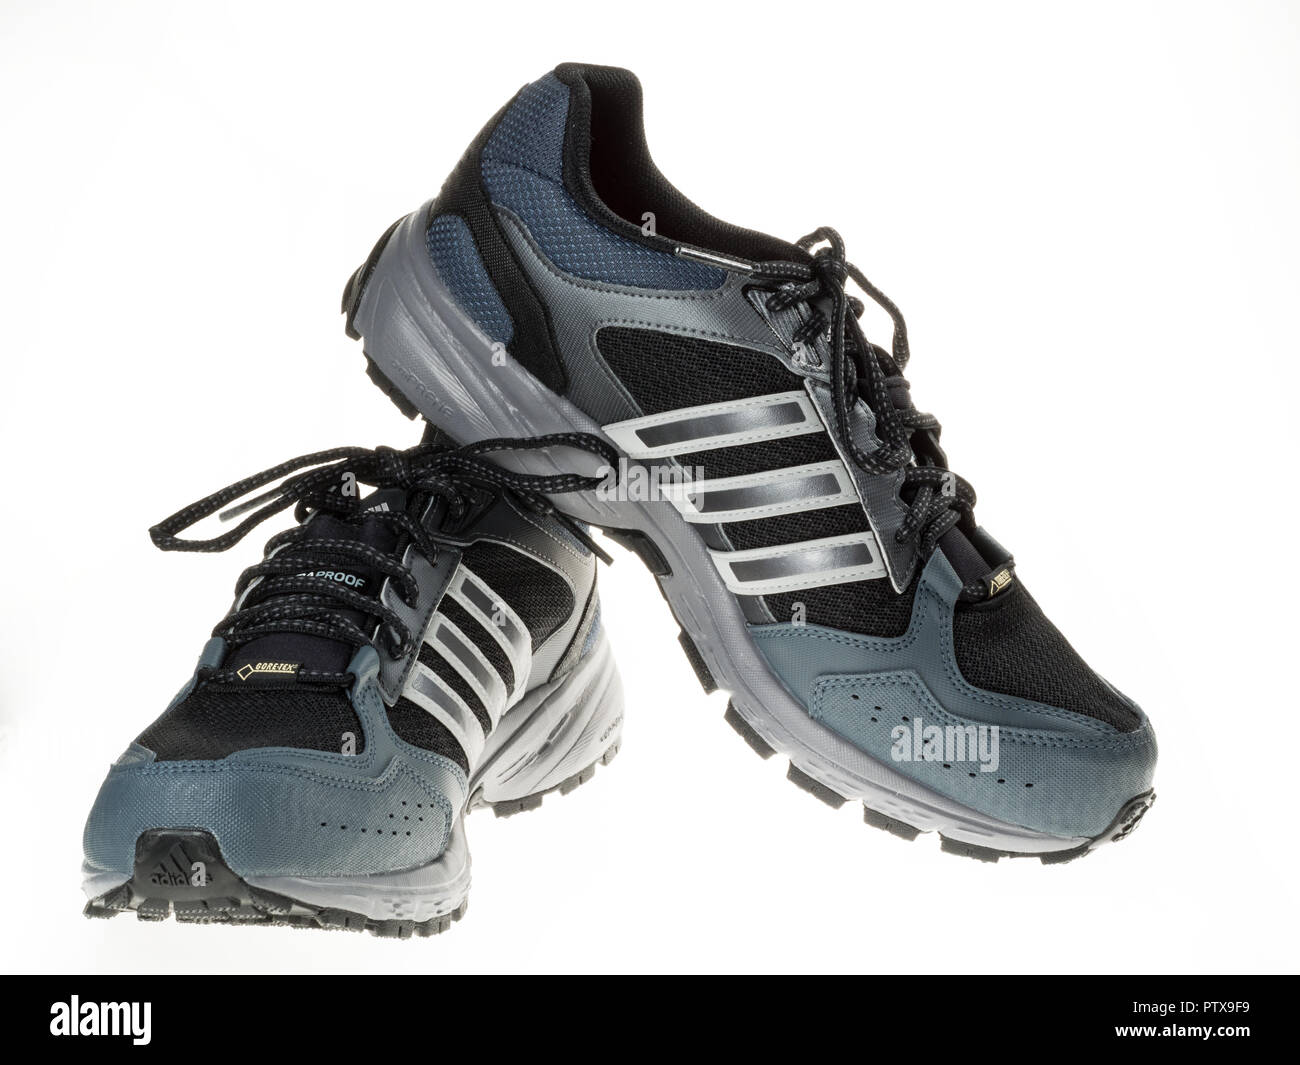 Trekking Company Stock Photos & Trekking Company Stock Images - Alamy